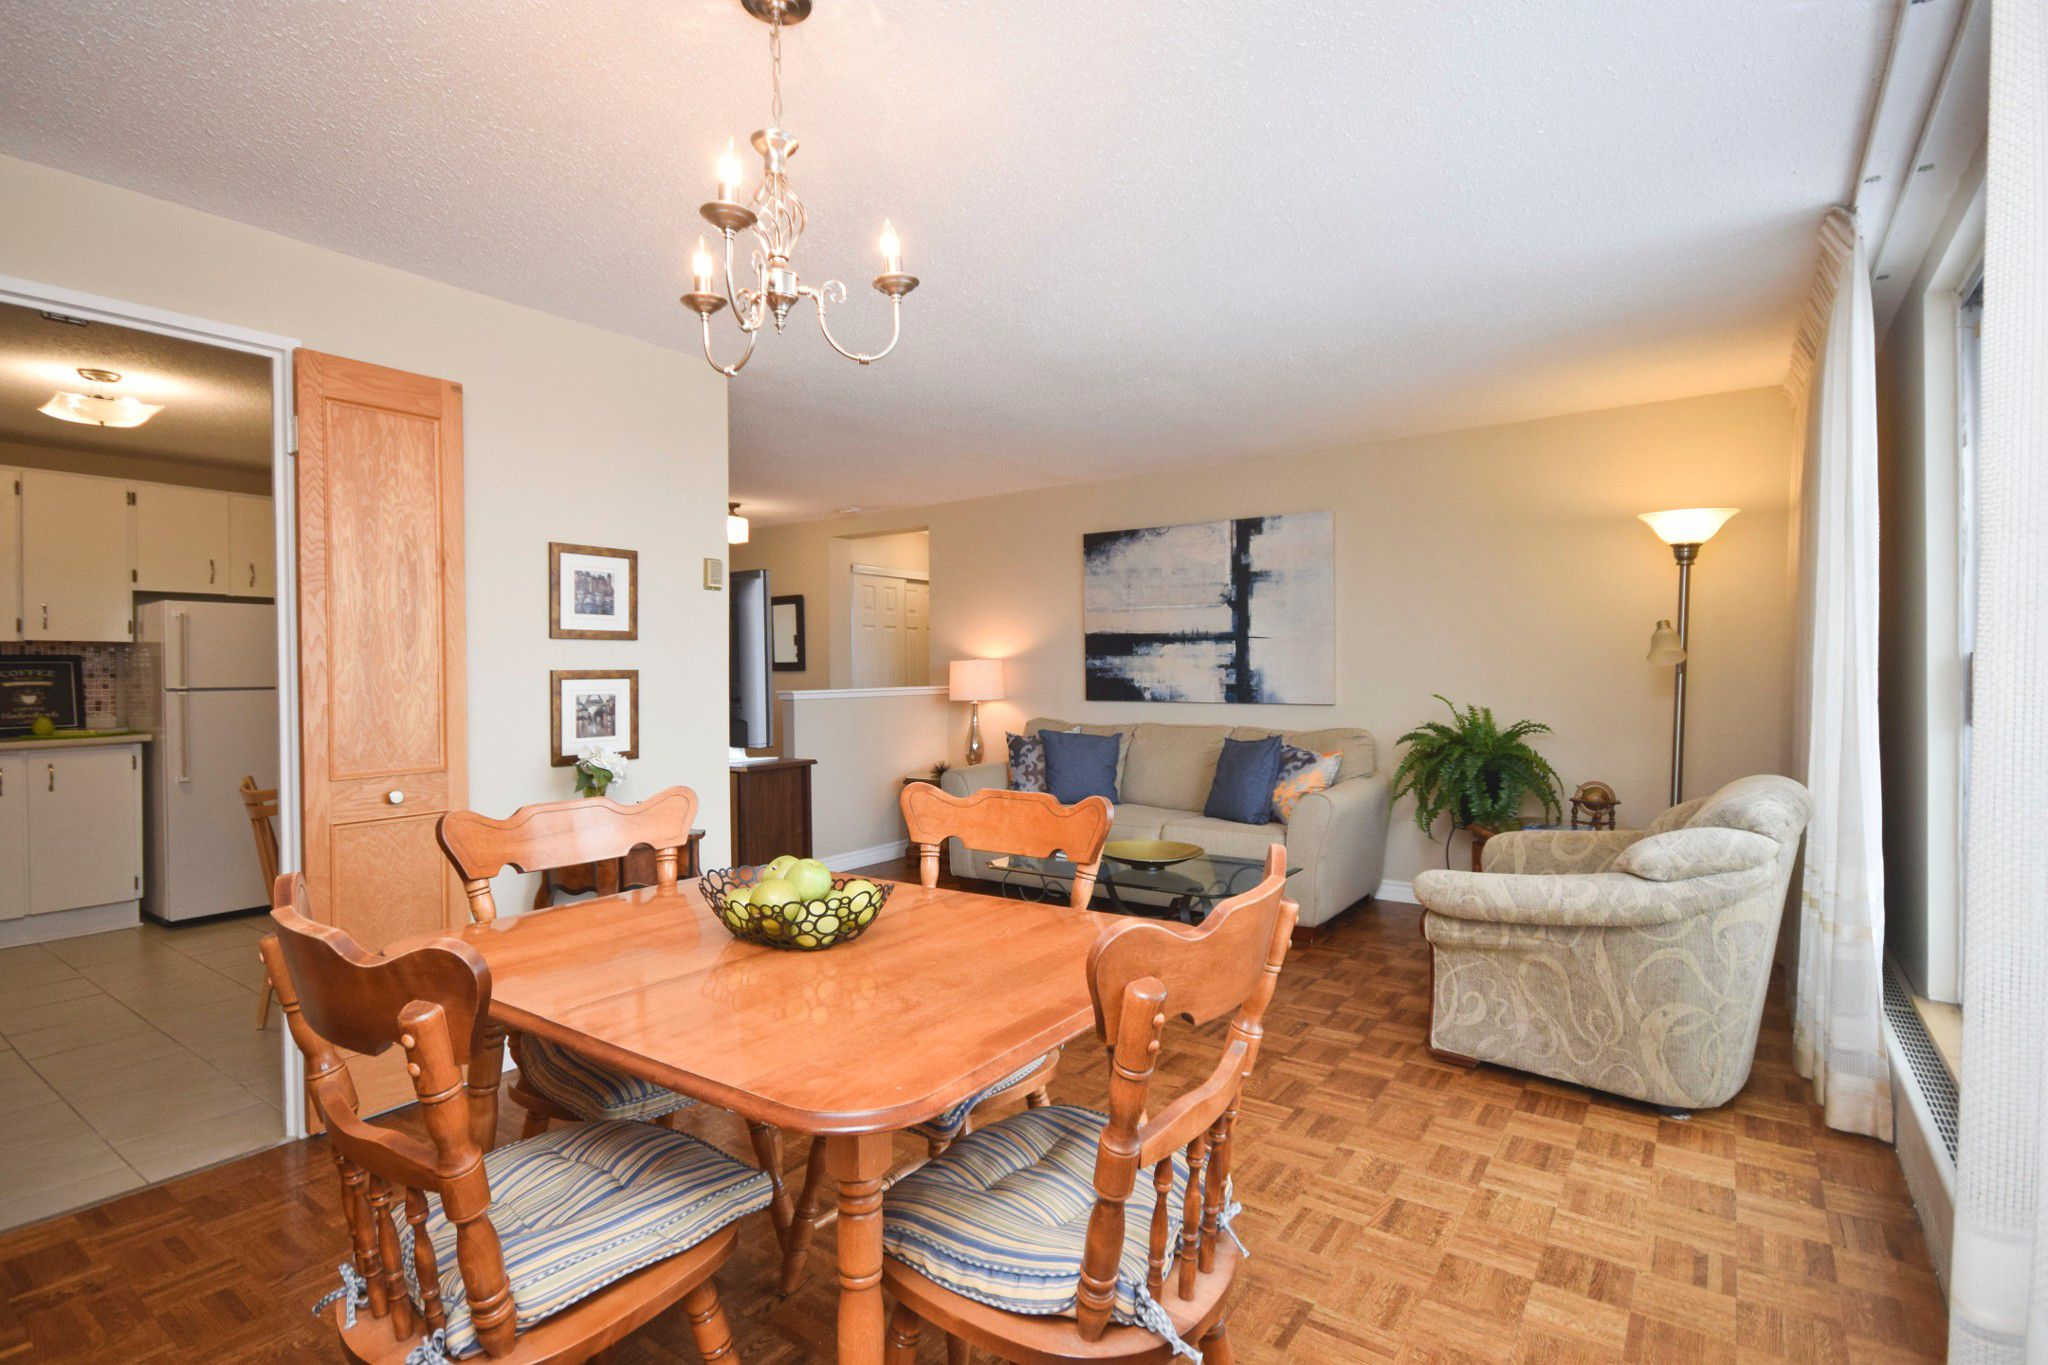 Photo 20: Photos: 515 1465 BASELINE Road in Ottawa: Copeland Park House for sale : MLS®# 1133550